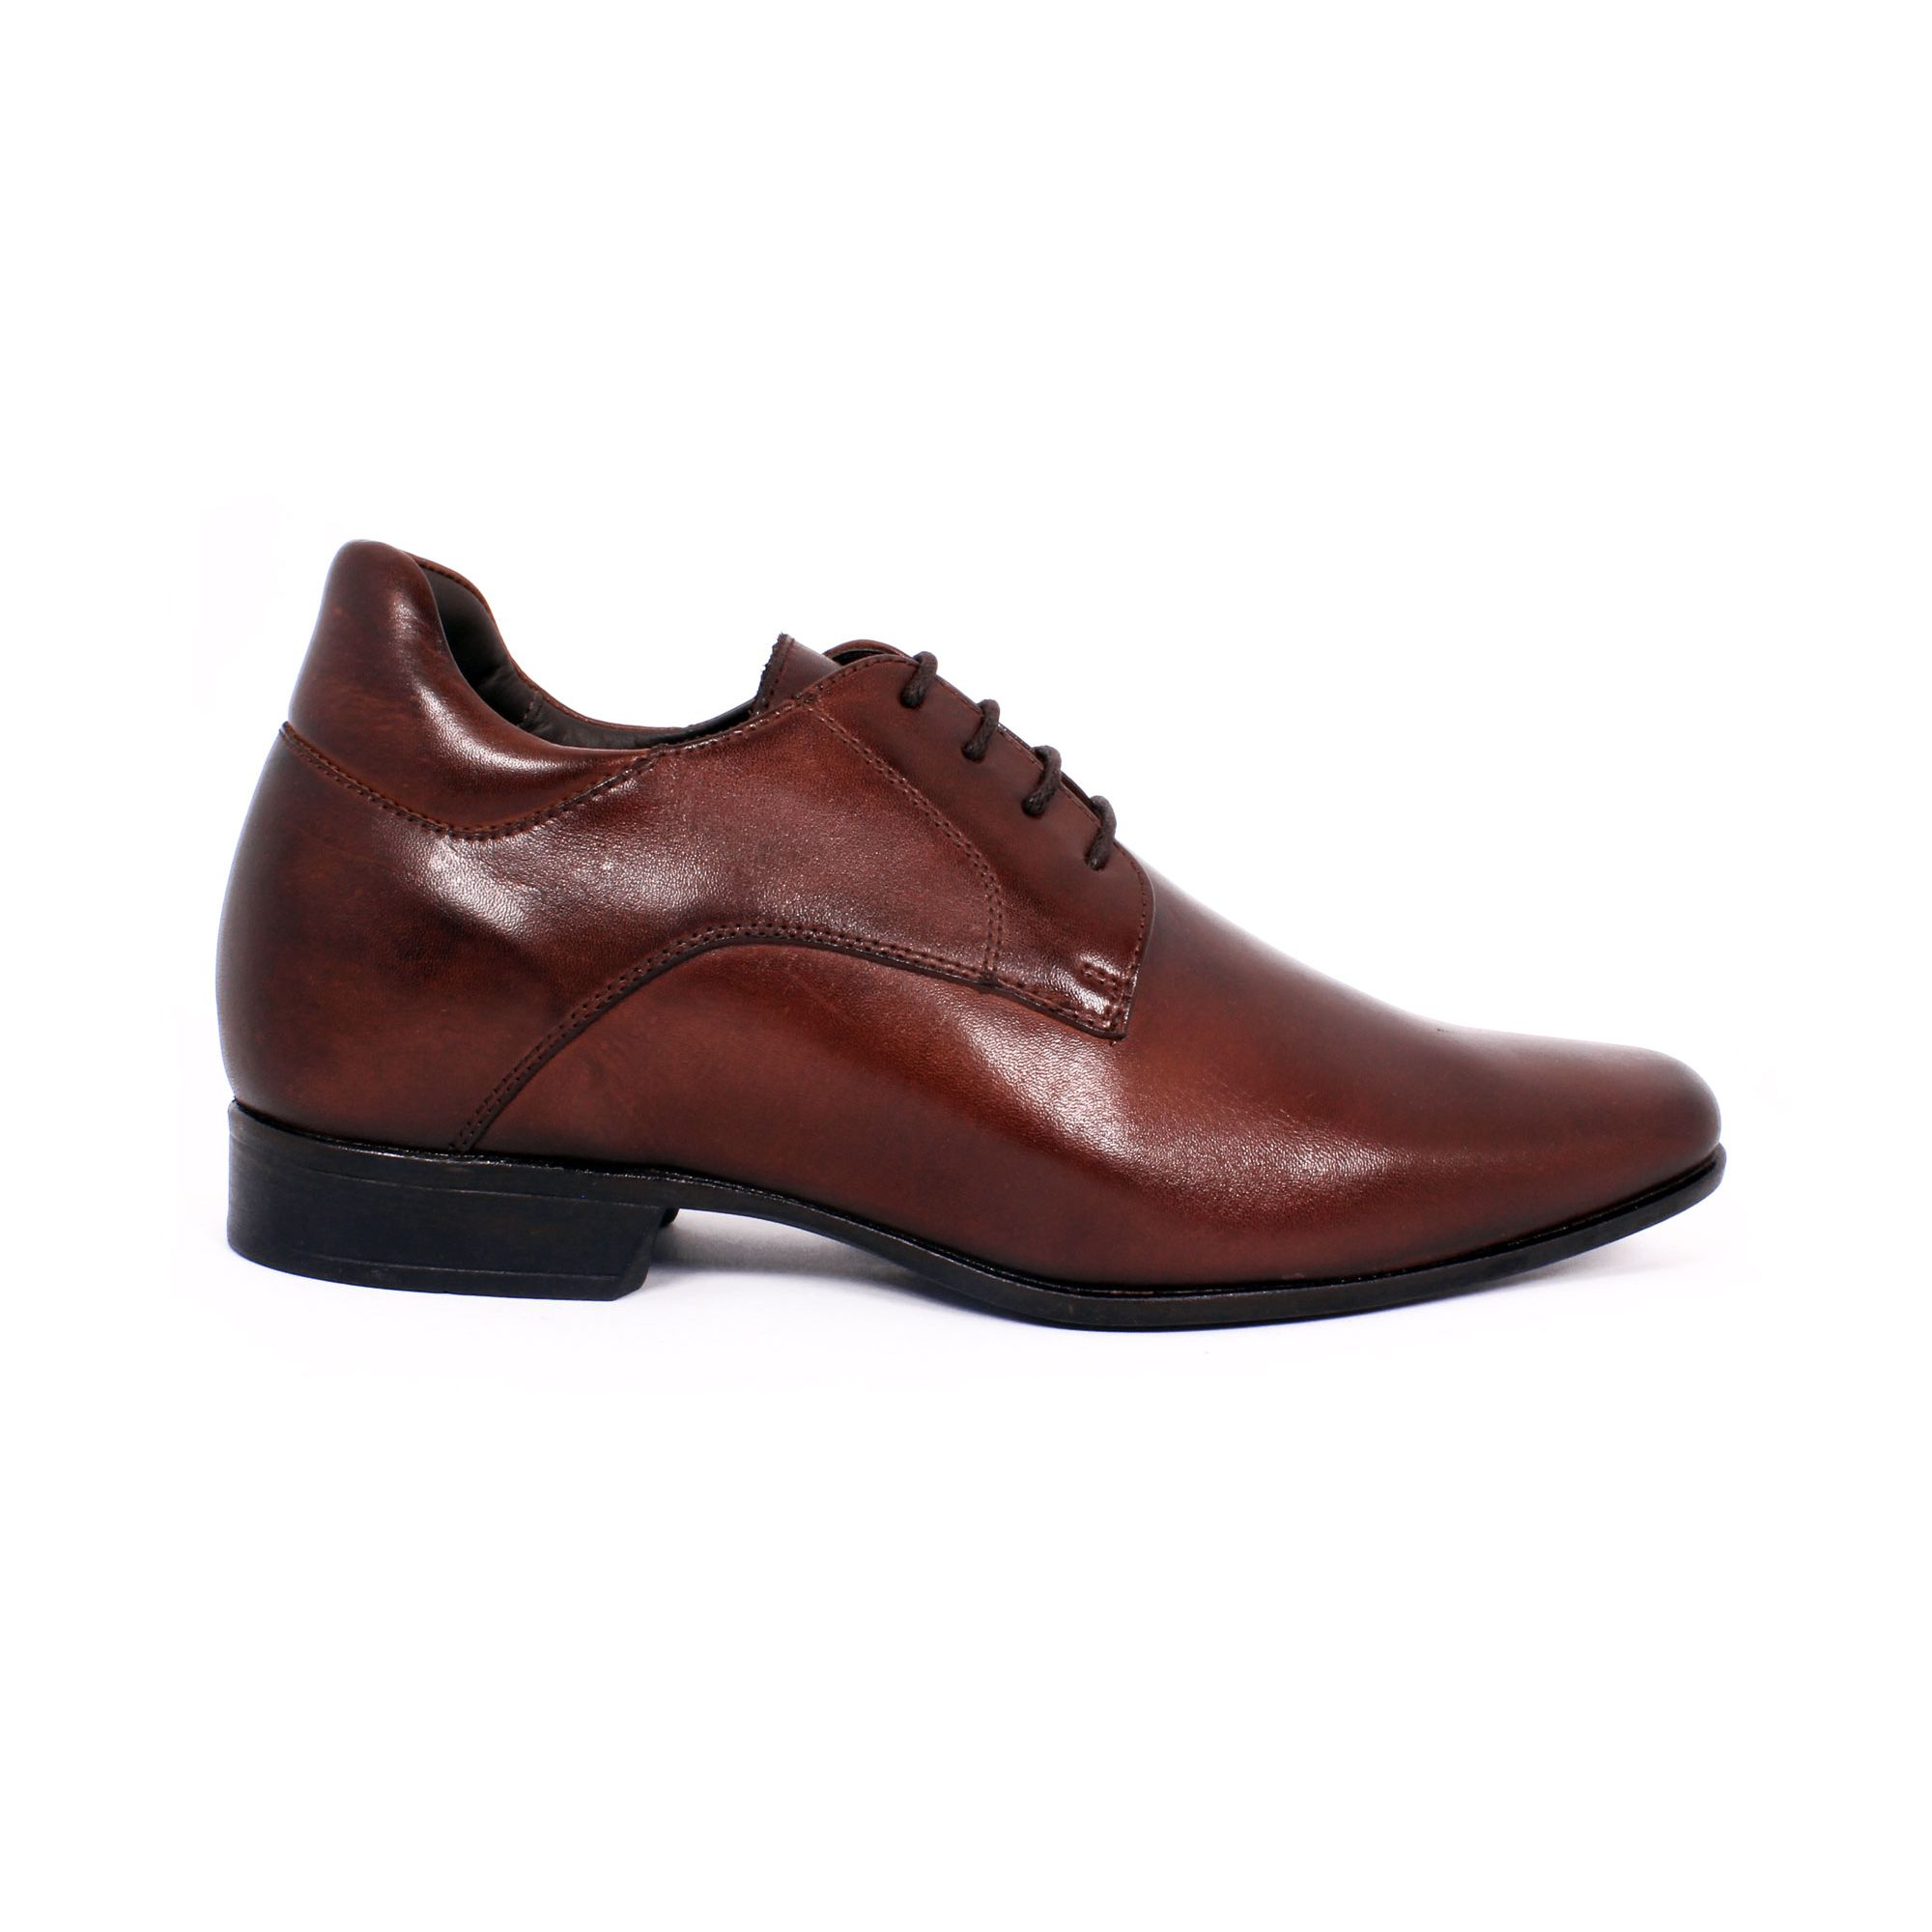 Zapato Formal Fashion Café Max Denegri +7cms de Altura_70823